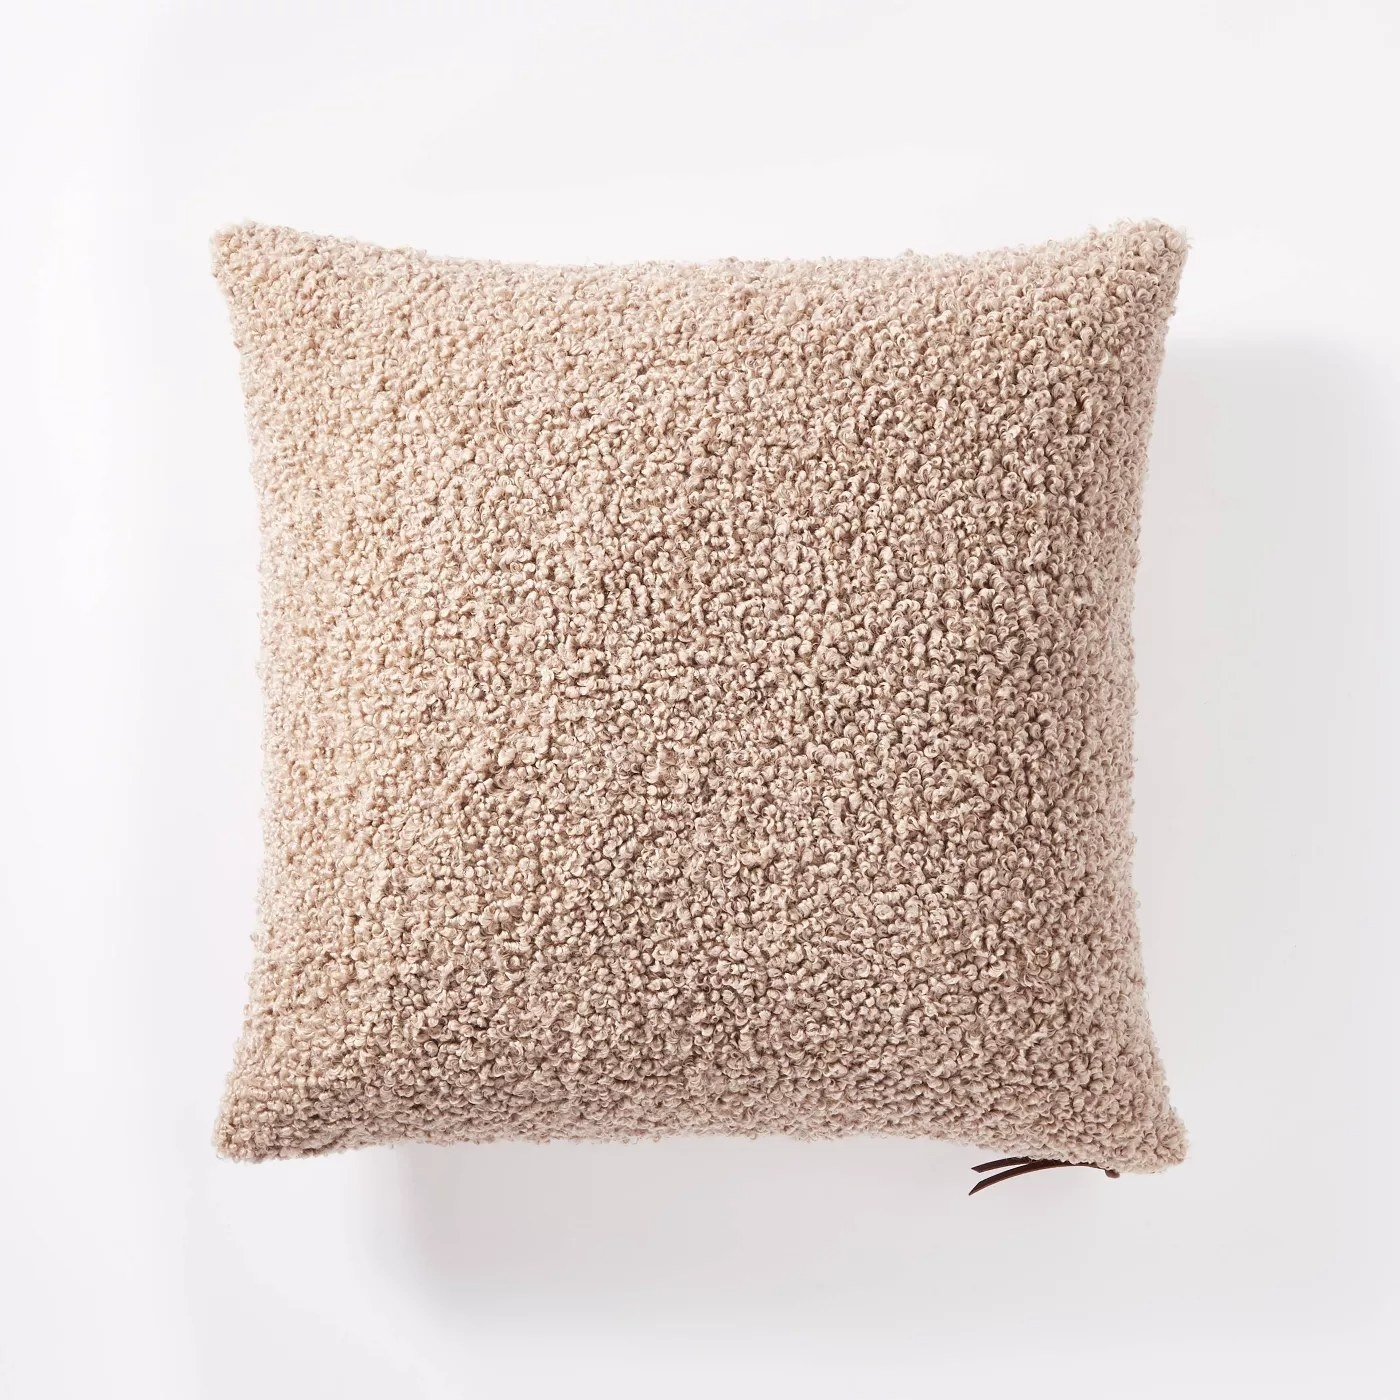 The beige pillow with a leather zipper accent